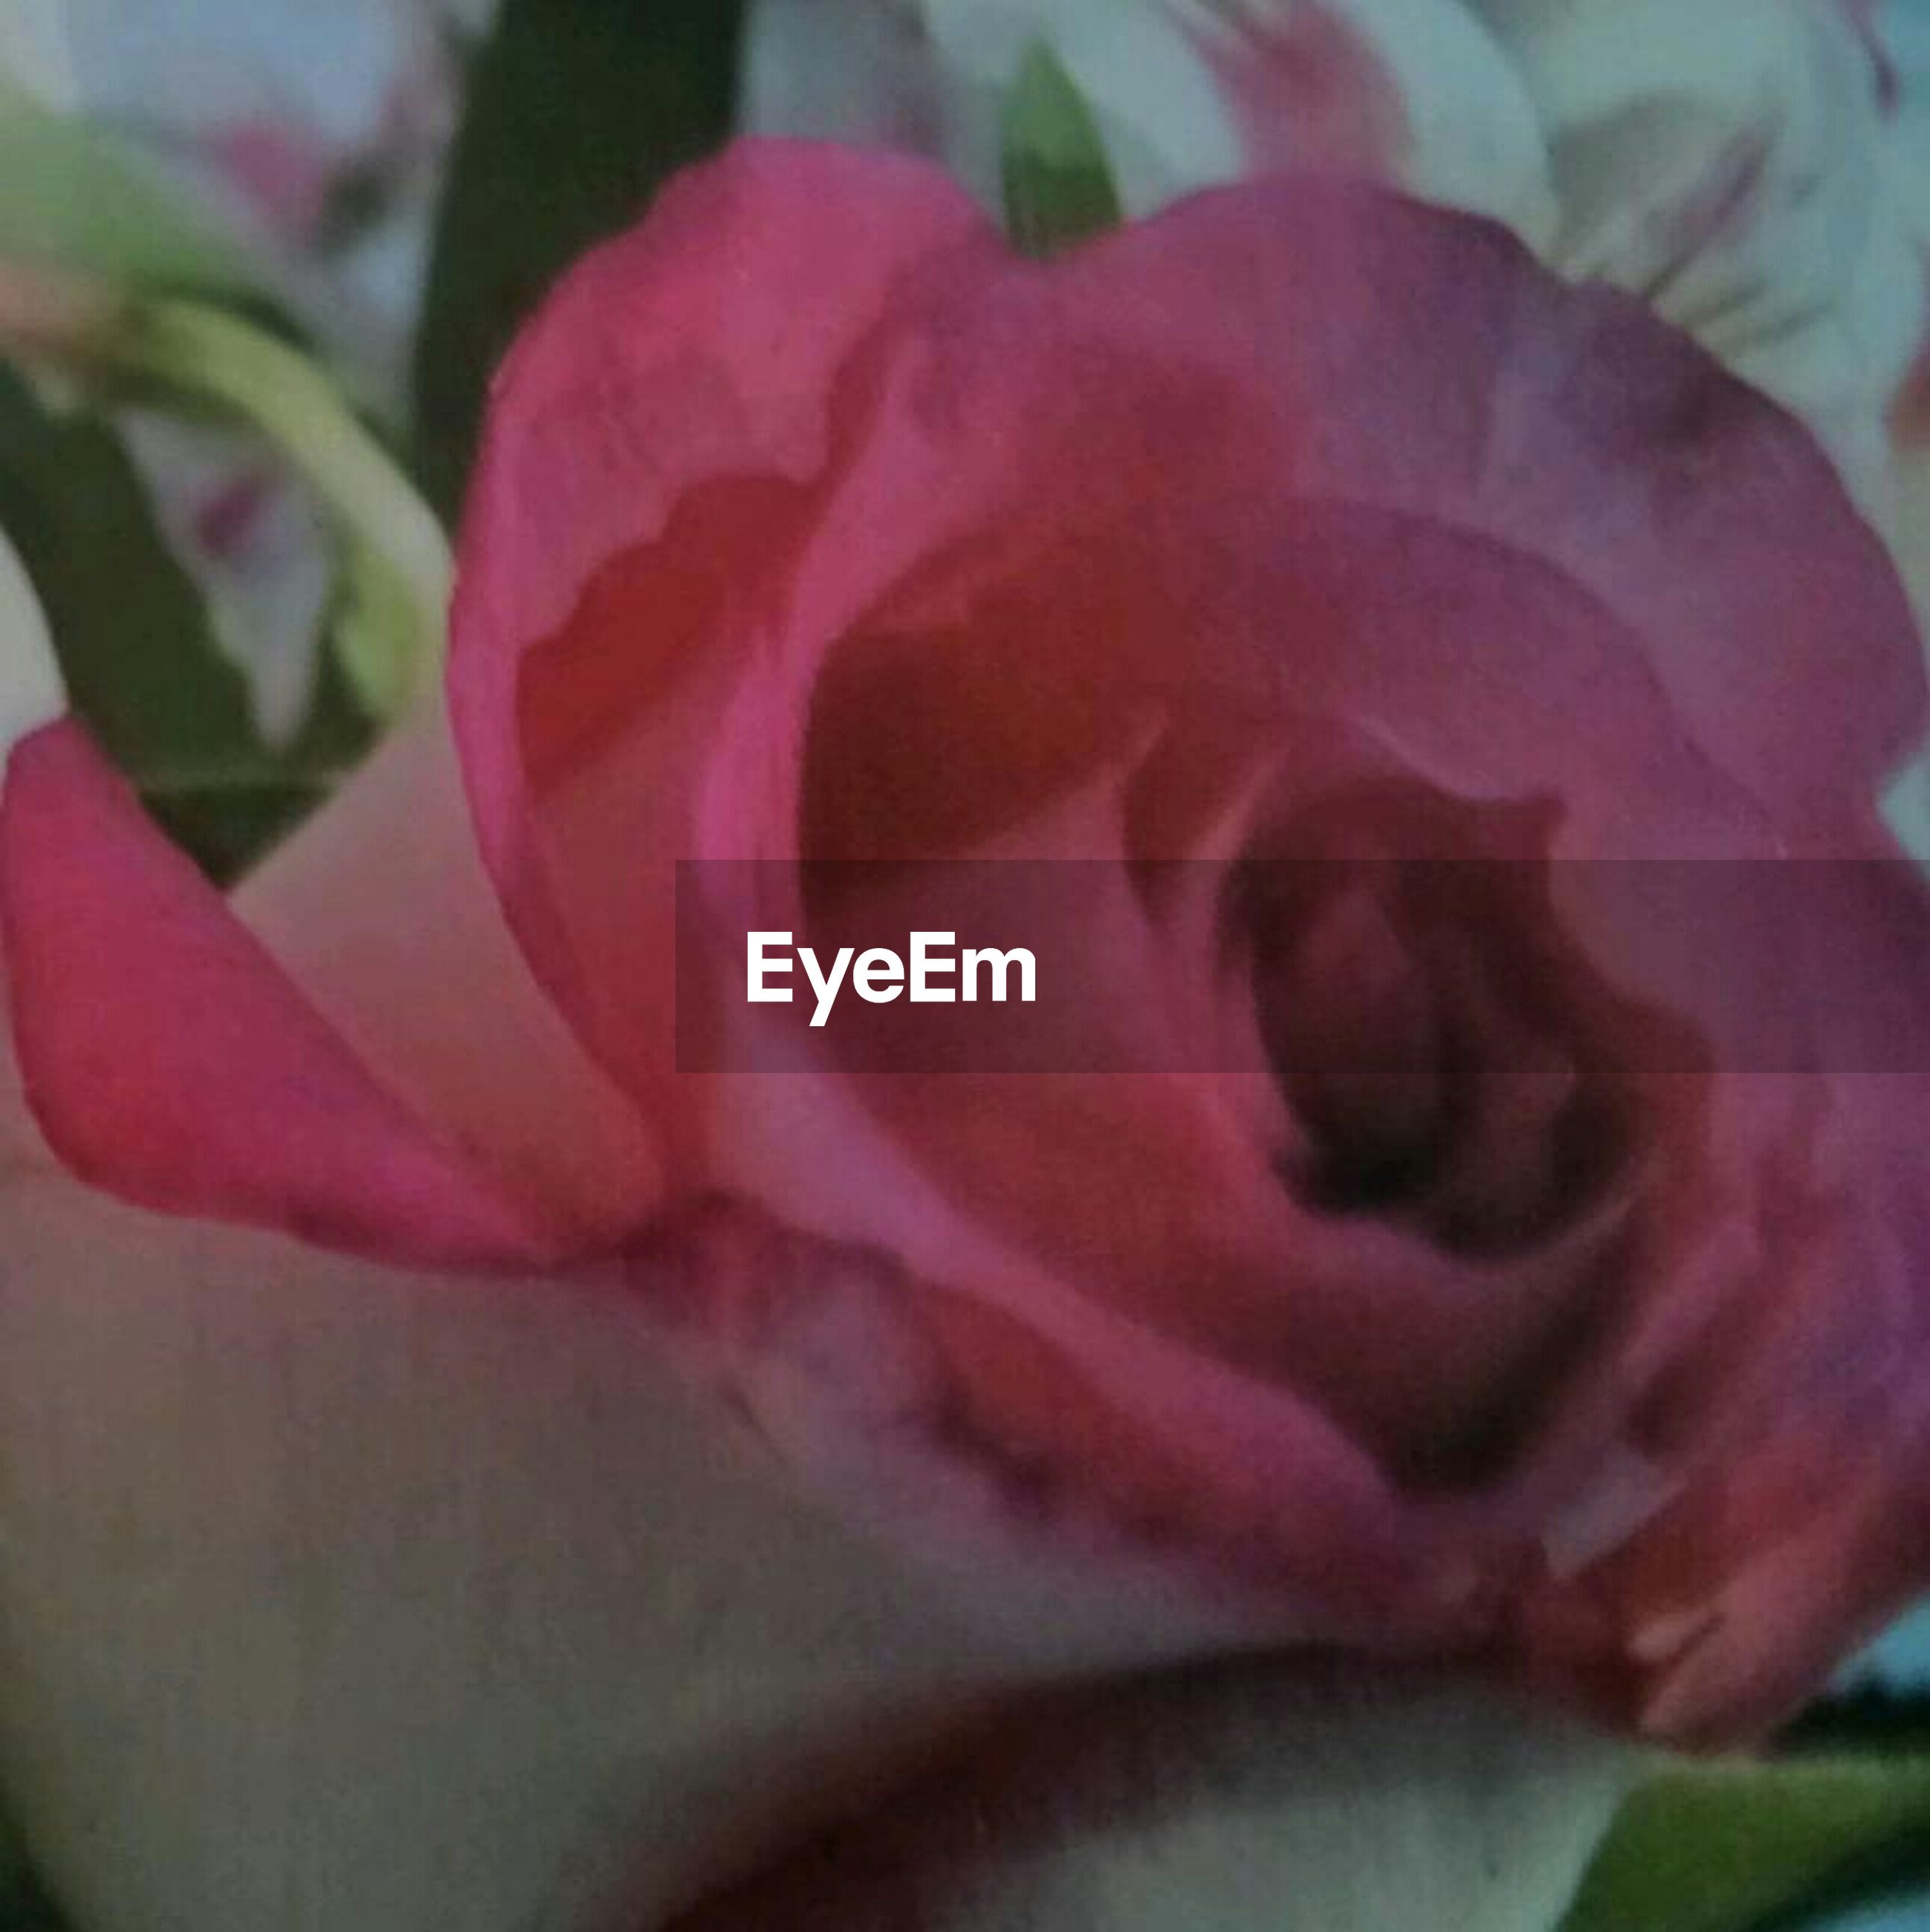 flower, petal, flower head, rose - flower, fragility, freshness, close-up, single flower, beauty in nature, growth, rose, pink color, nature, blooming, focus on foreground, single rose, plant, in bloom, selective focus, softness